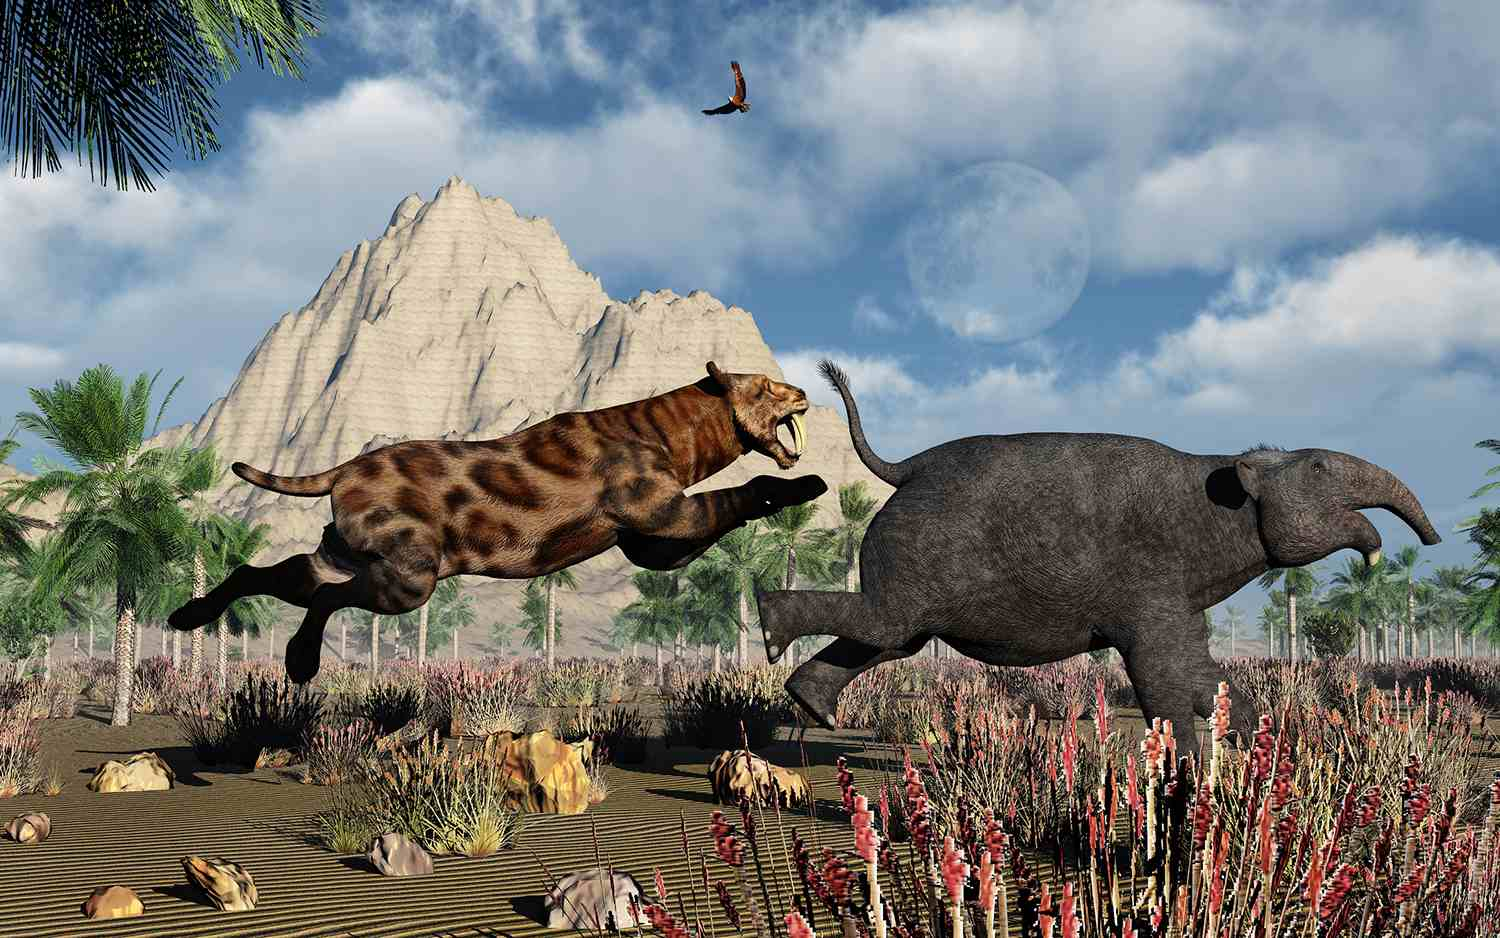 A Carnivorous Sabre-Tooth Tiger Attacking a Young Deinotherium